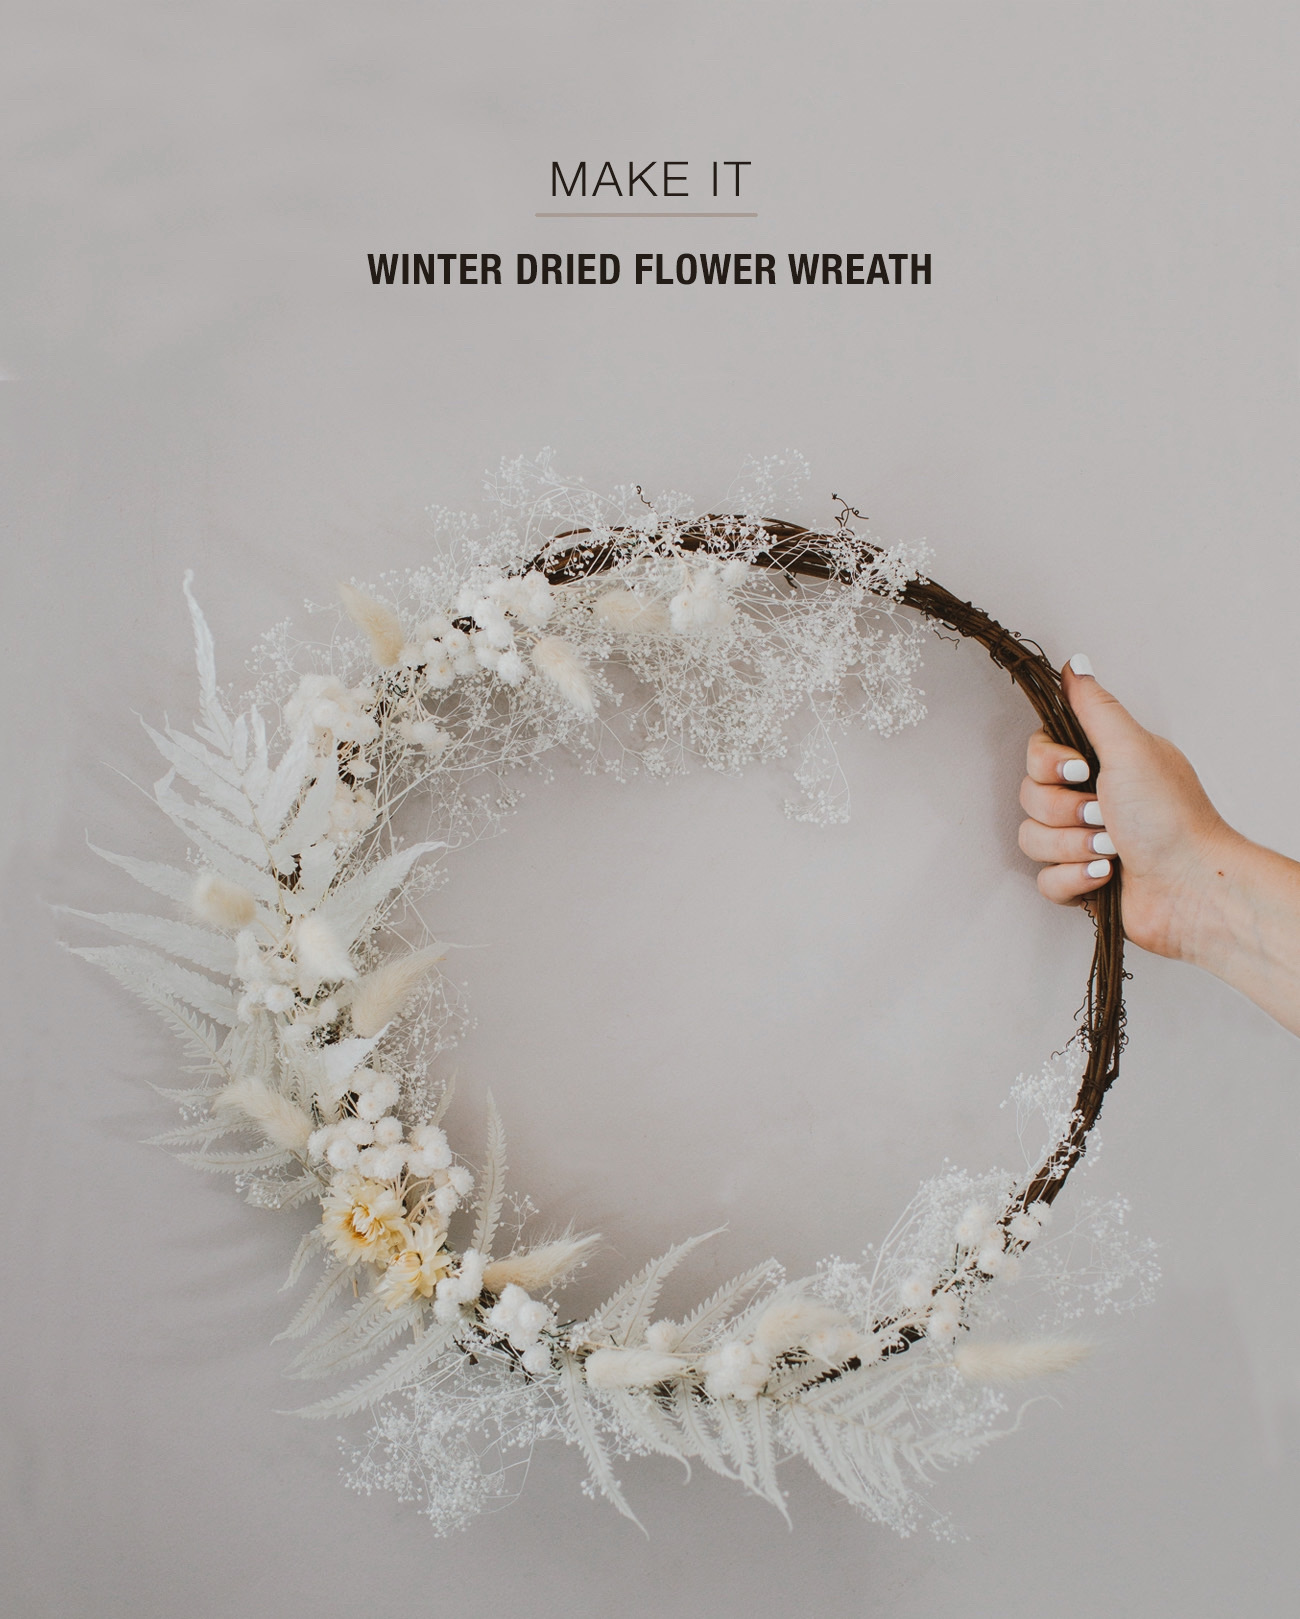 Winter Dried Flower Wreath DIY